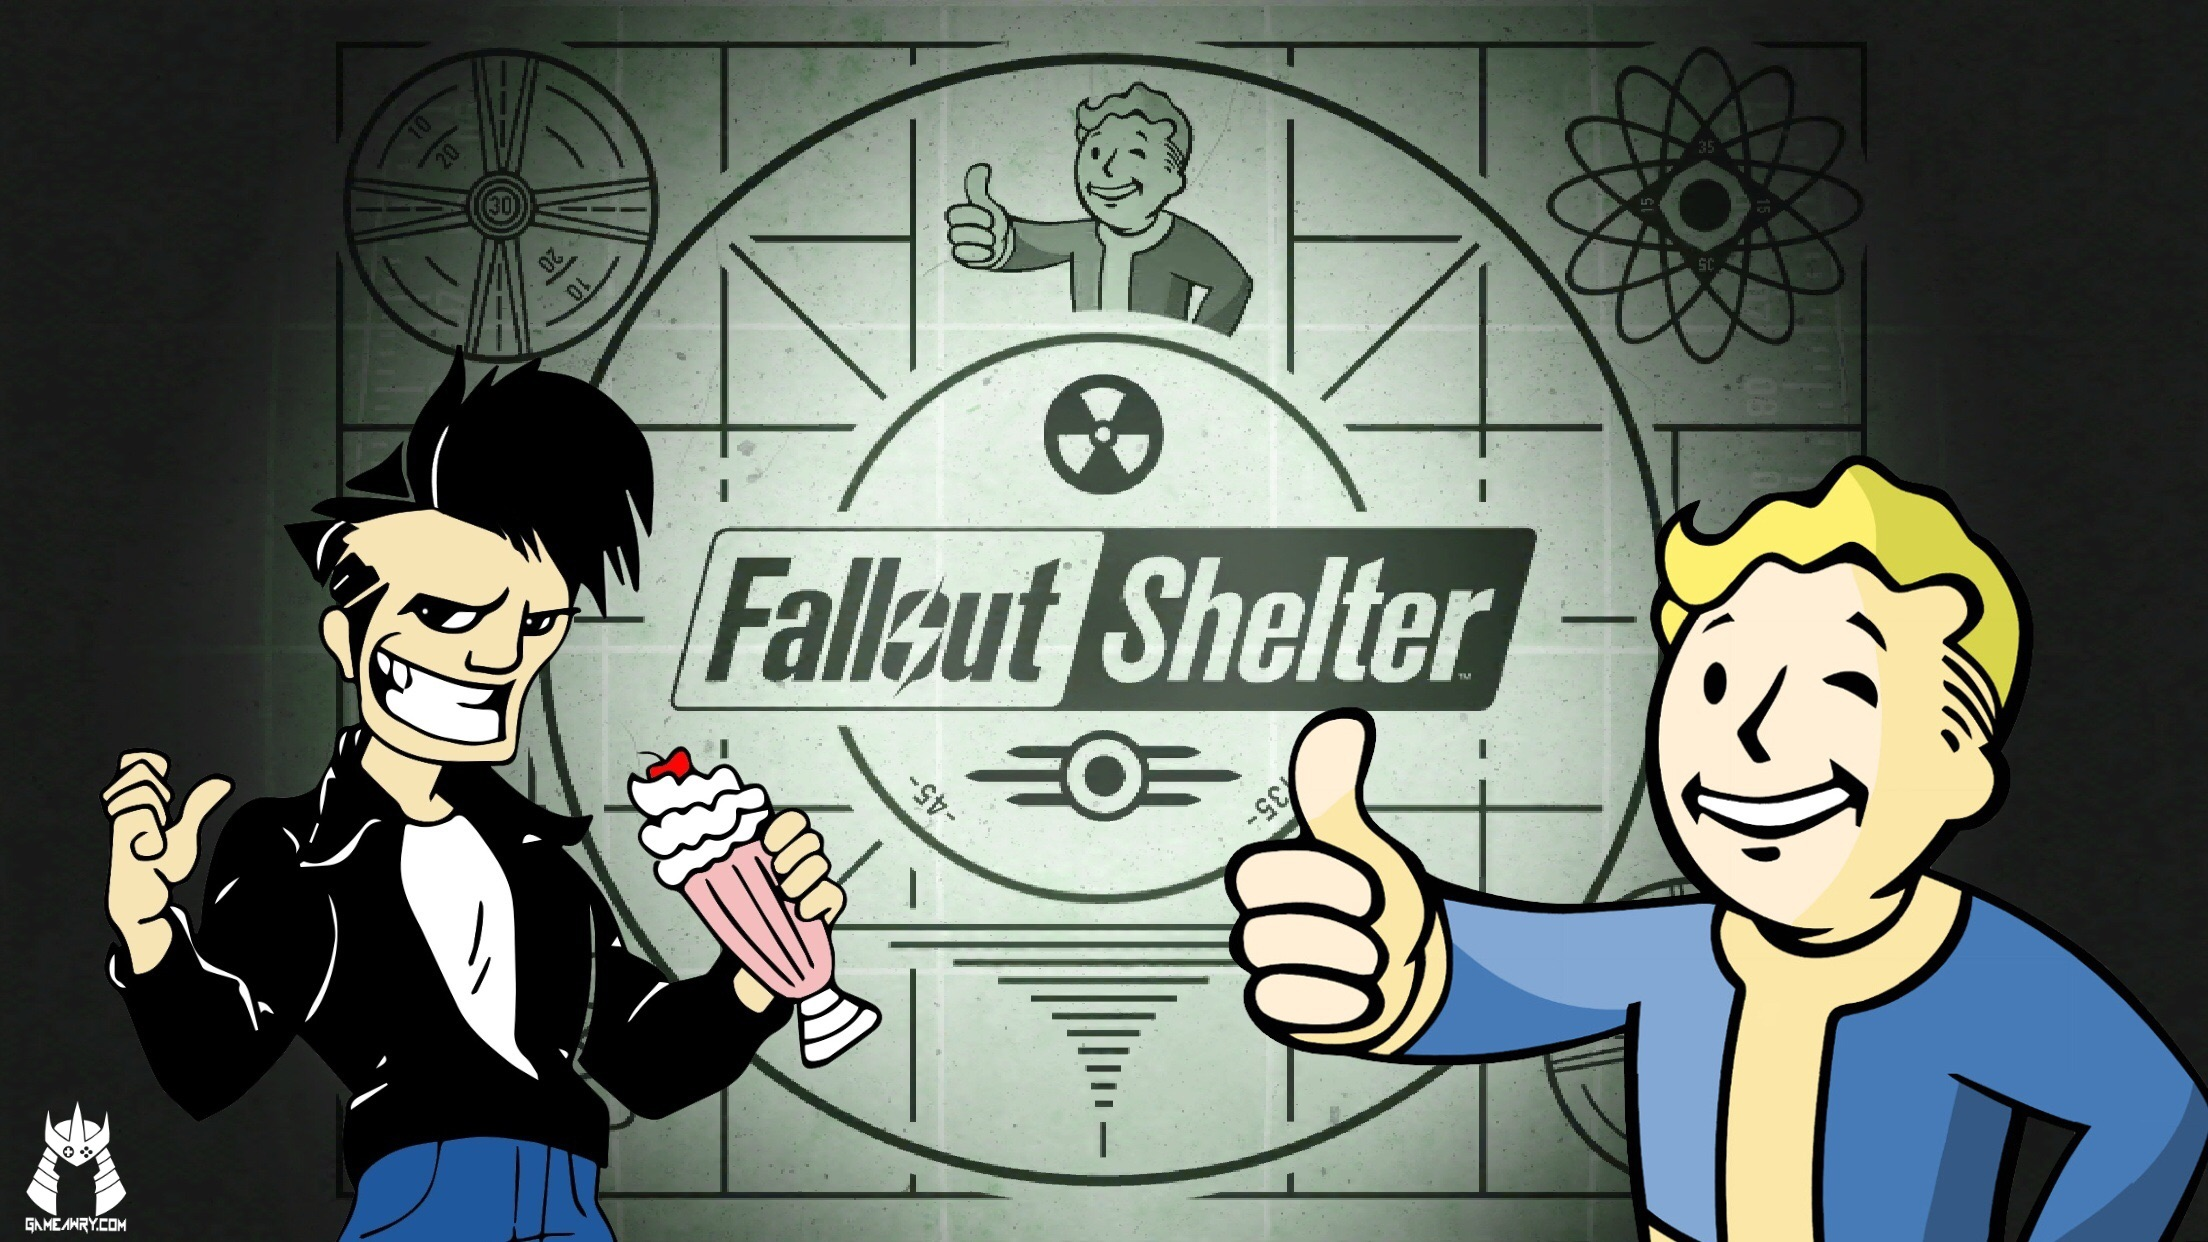 Fallout Shelter gets several thumbs up.